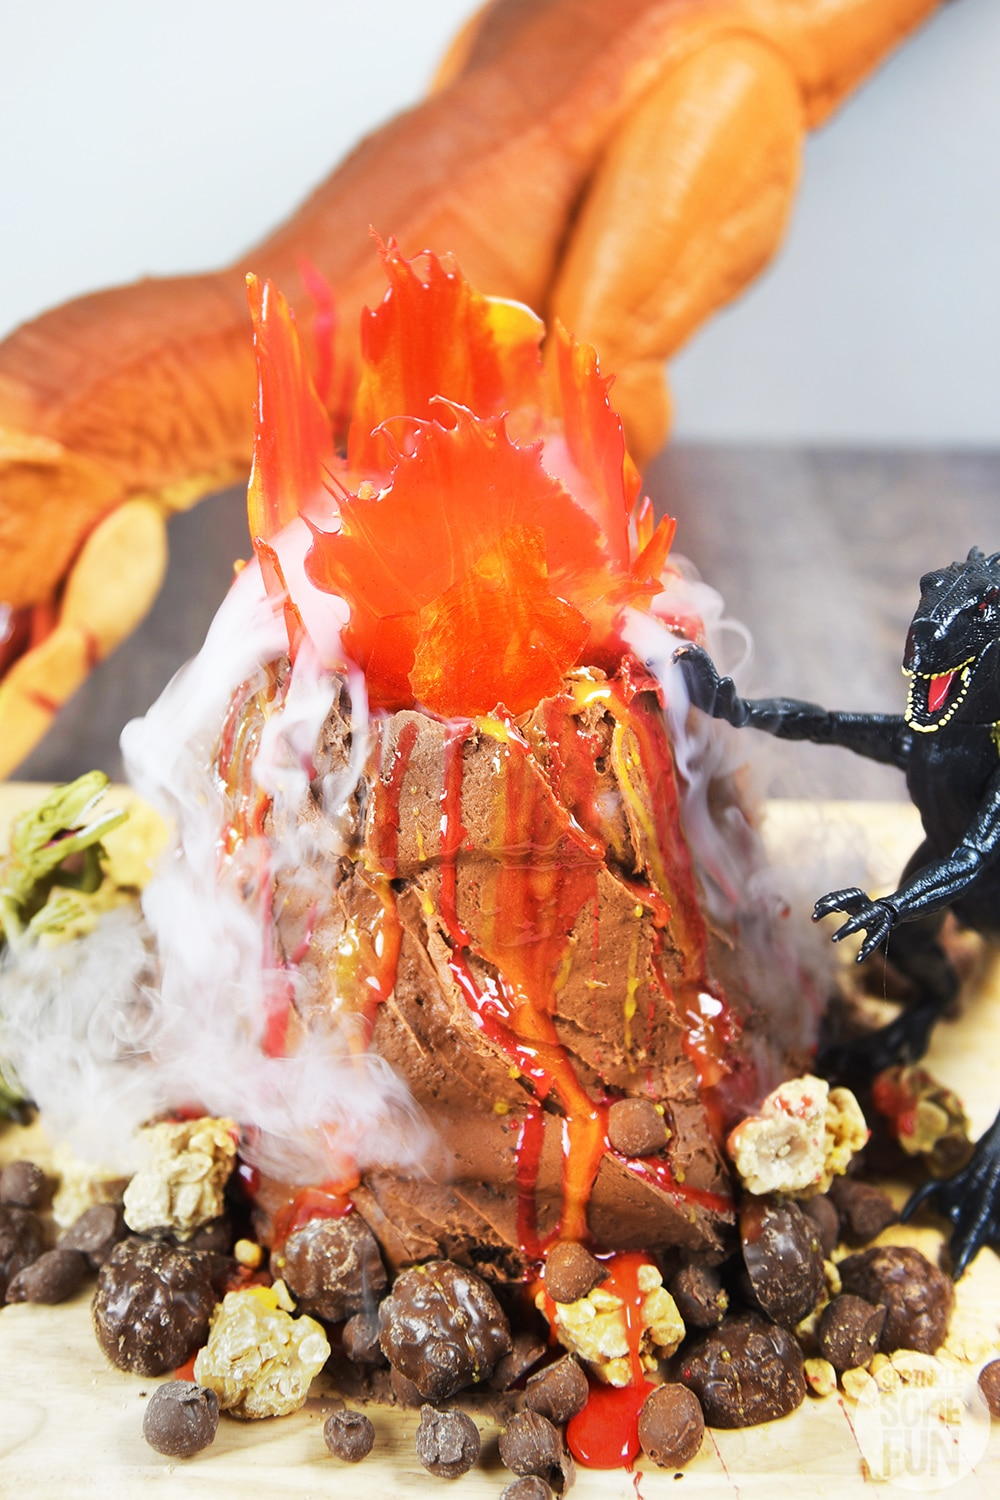 Dinosaur Volcano Cake with steaming Volcano and Steam